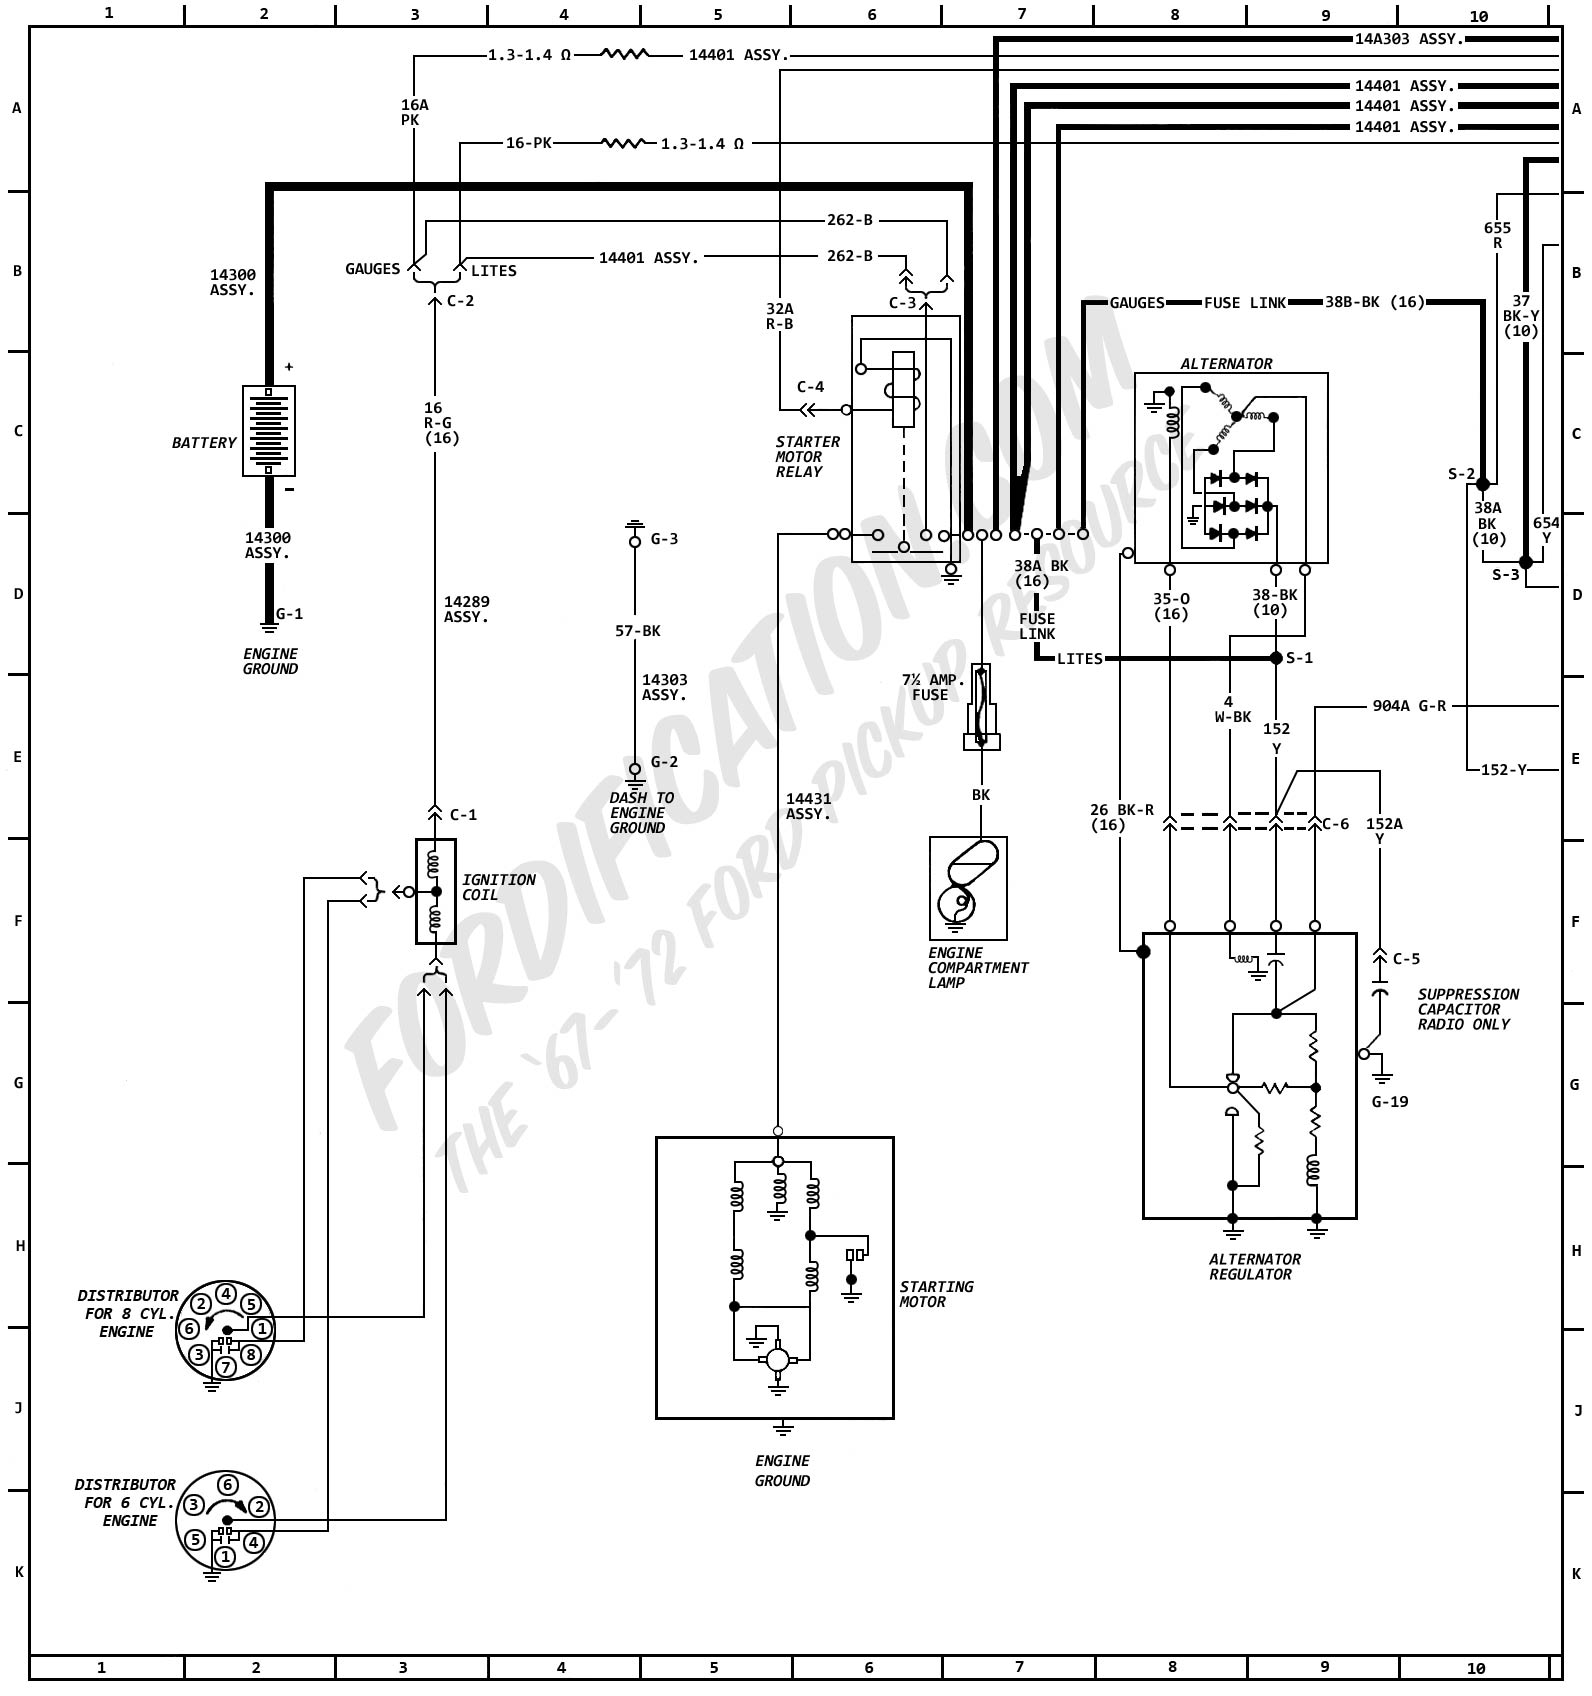 alternator wiring diagram for 1985 ford f 150 data wiring diagram 1979 ford f 250 alternator wiring diagram wiring diagram 2002 ford f 150 alternator wiring alternator wiring diagram for 1985 ford f 150